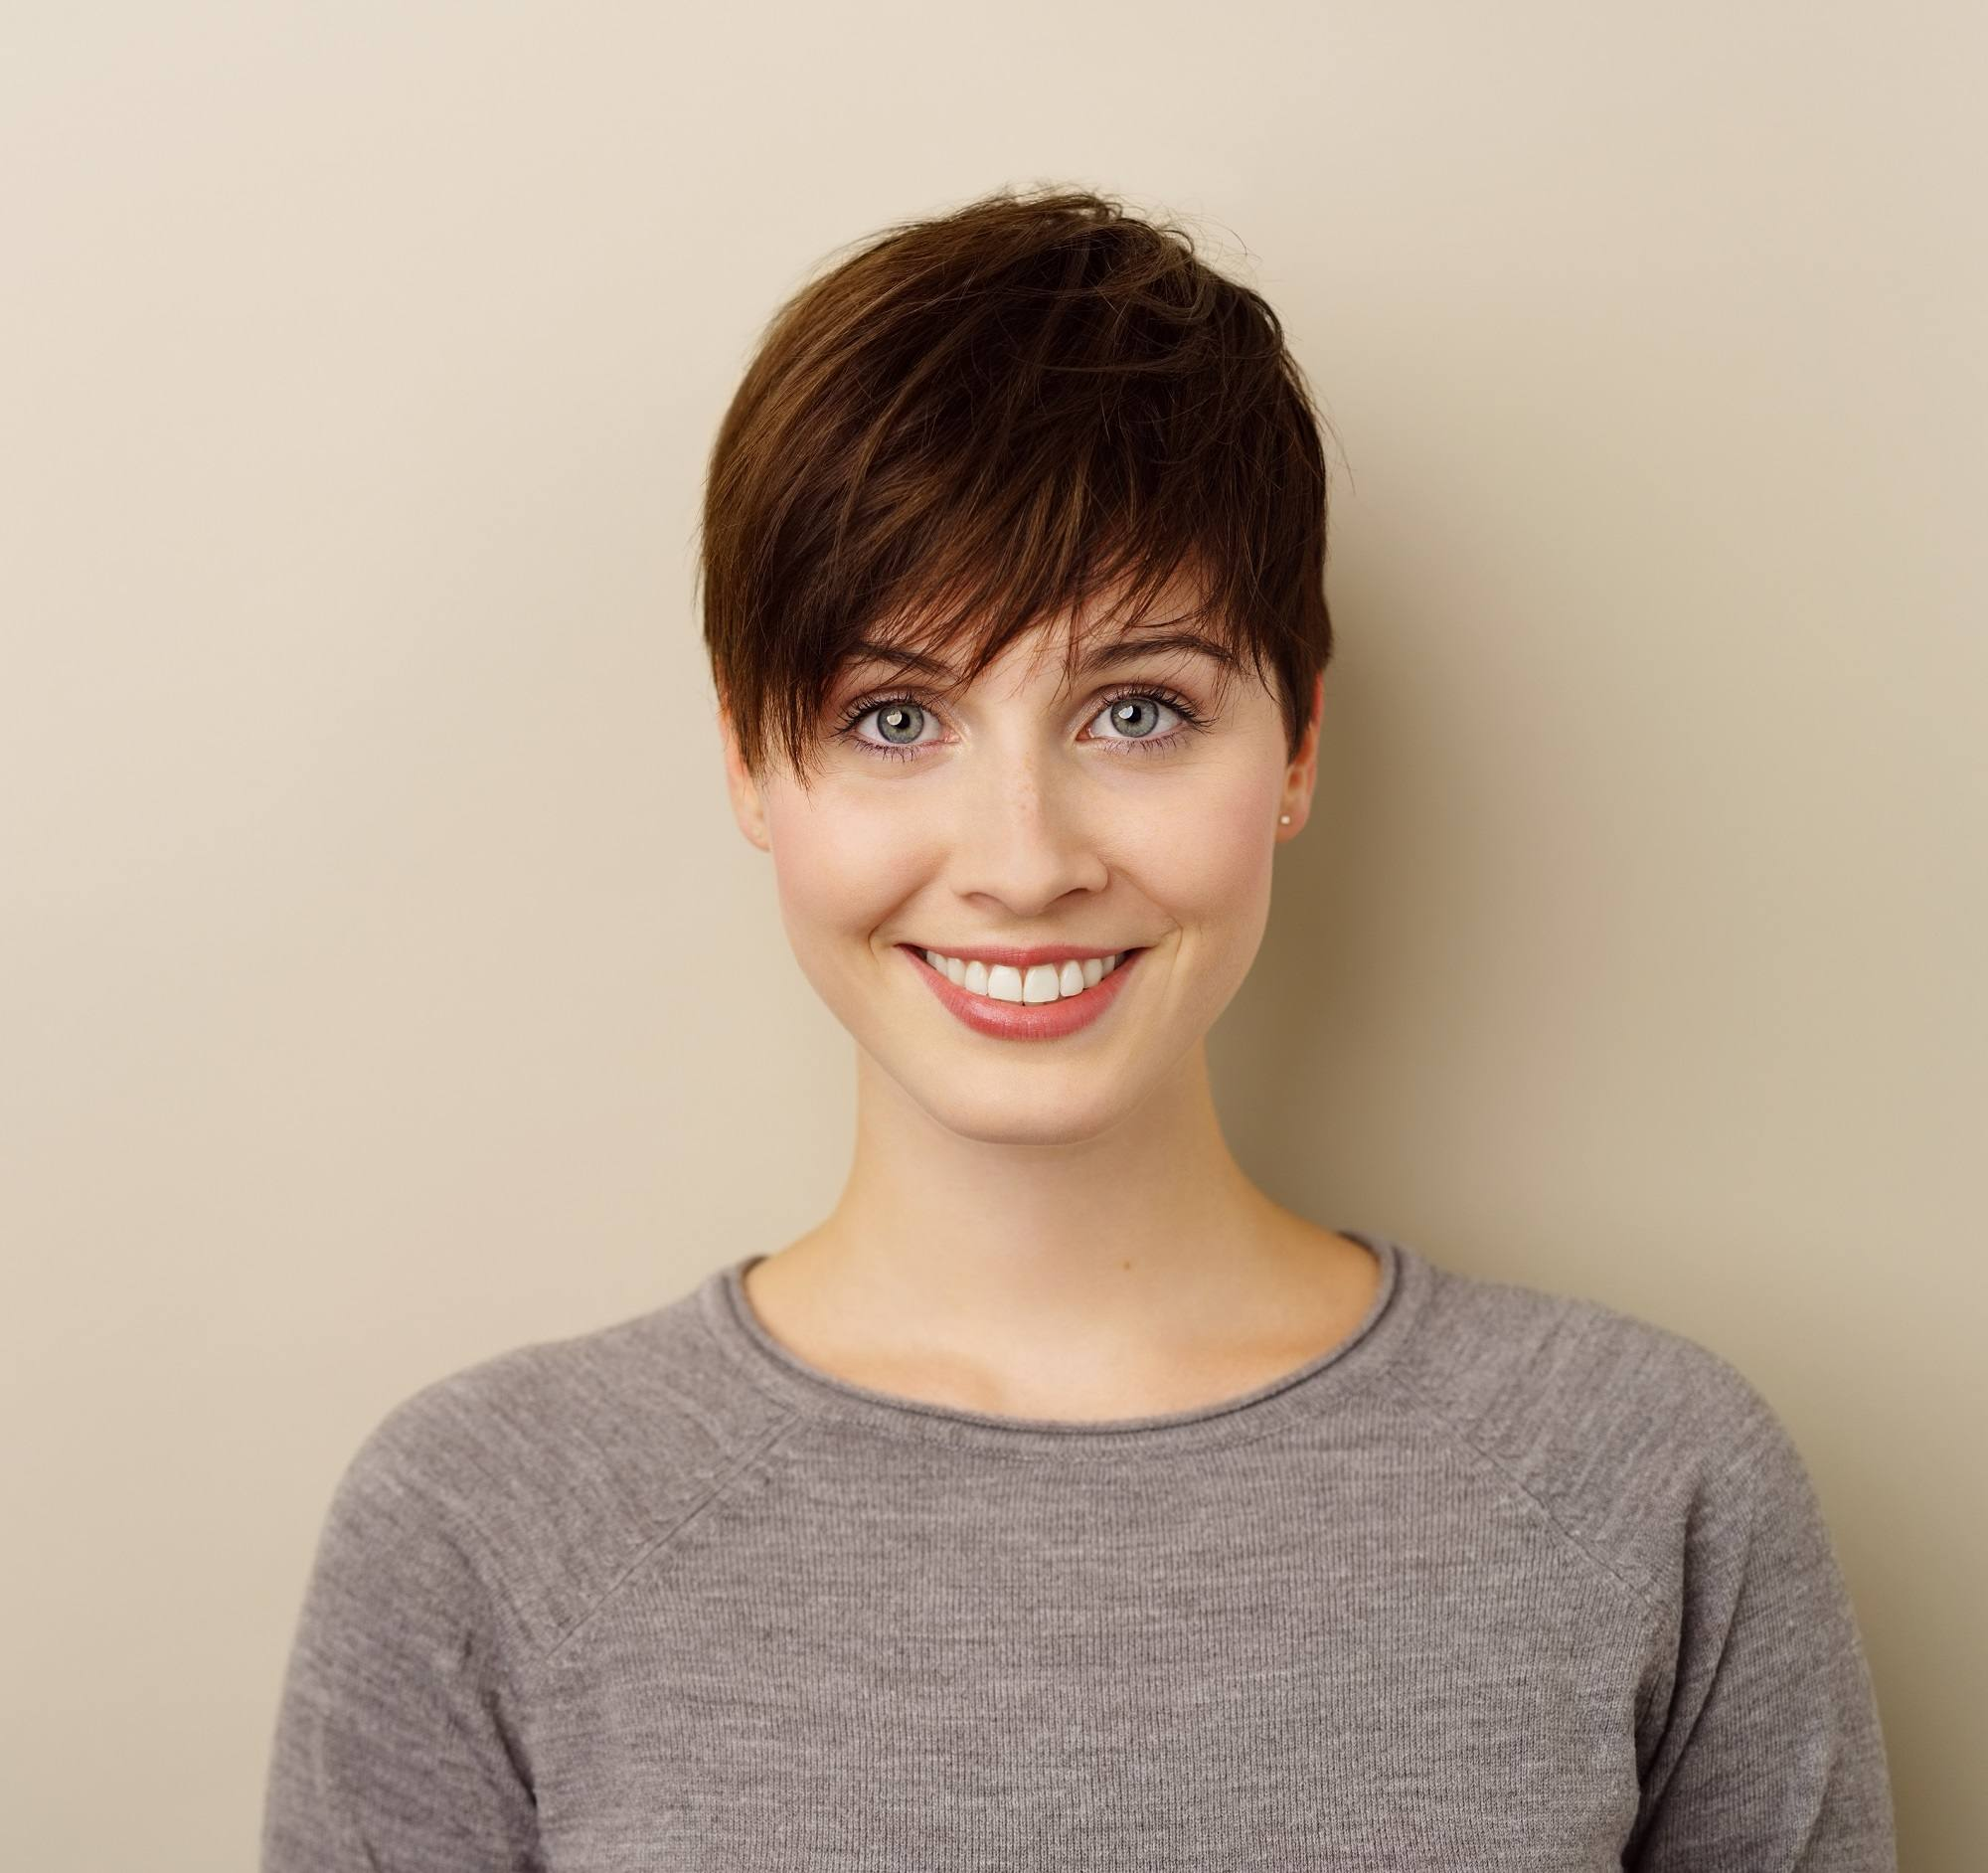 Chocolate brown hair color: Closeup shot of a woman with short dark brown pixie cut wearing a gray shirt against a pale beige background